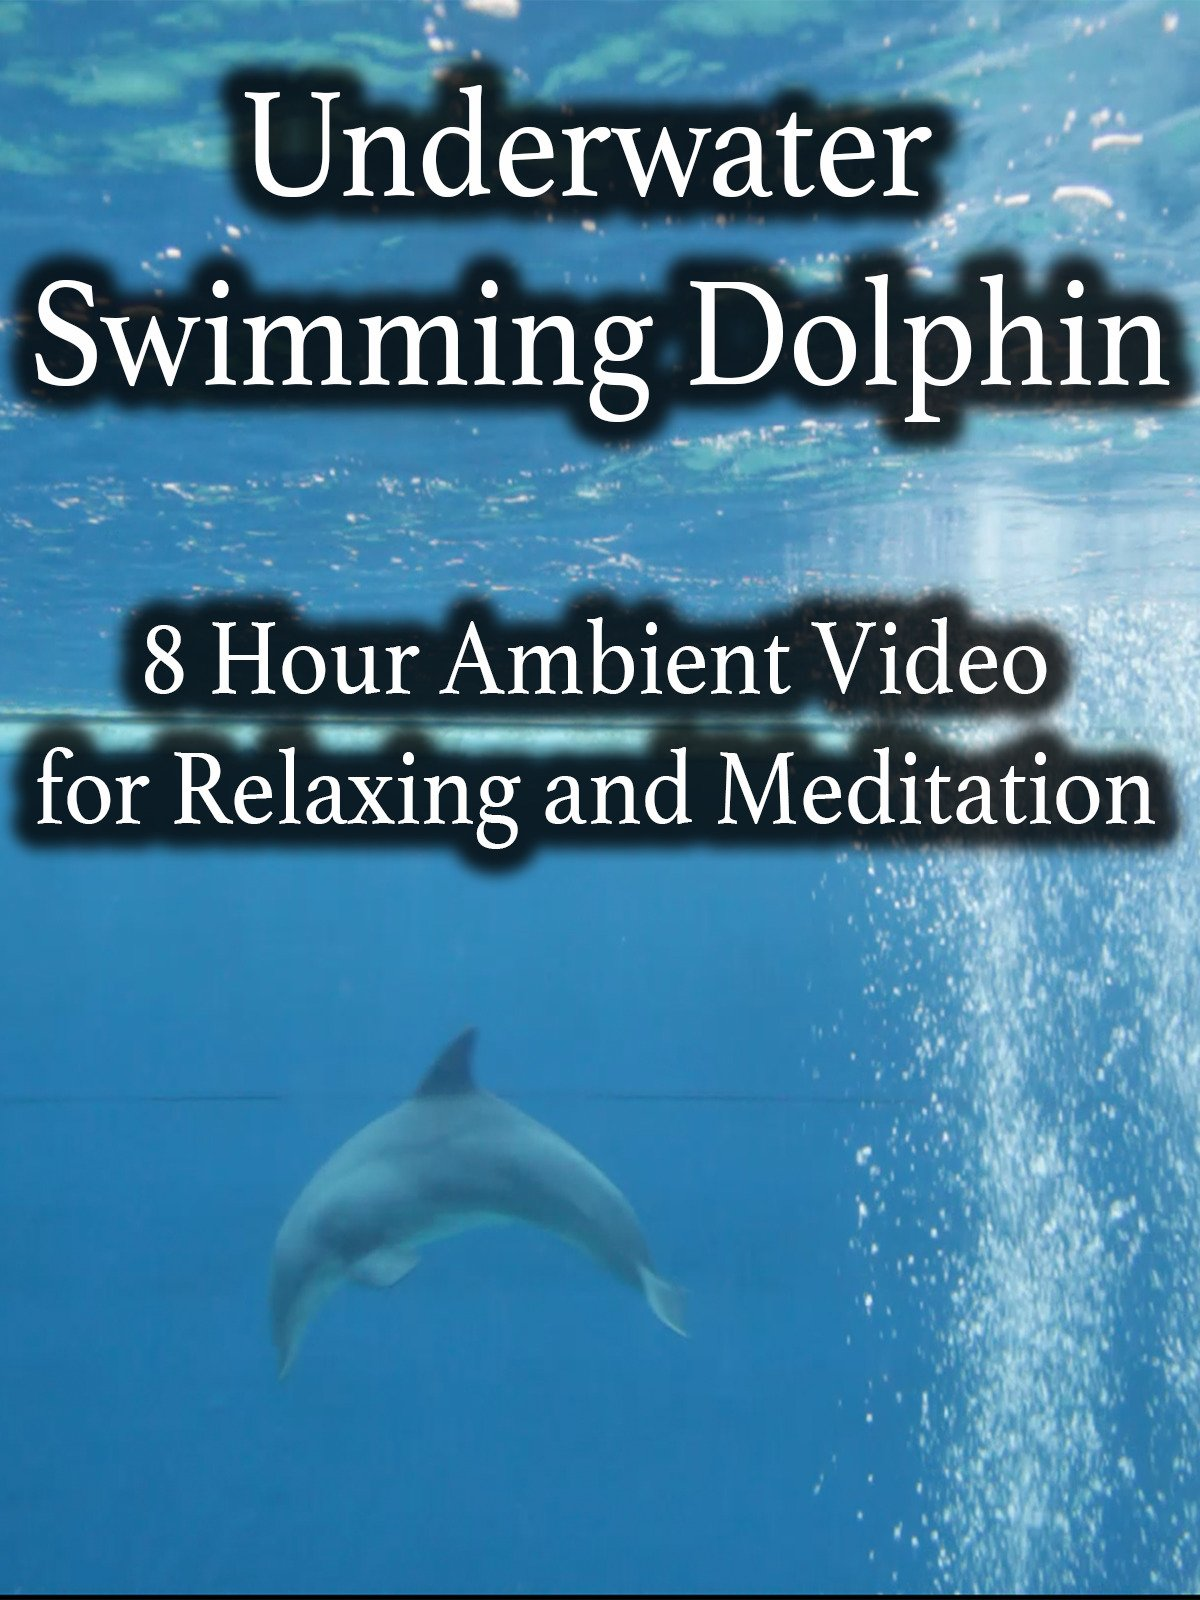 Underwater Swimming Dolphin 8 Hour Ambient Video for Relaxing and Meditation